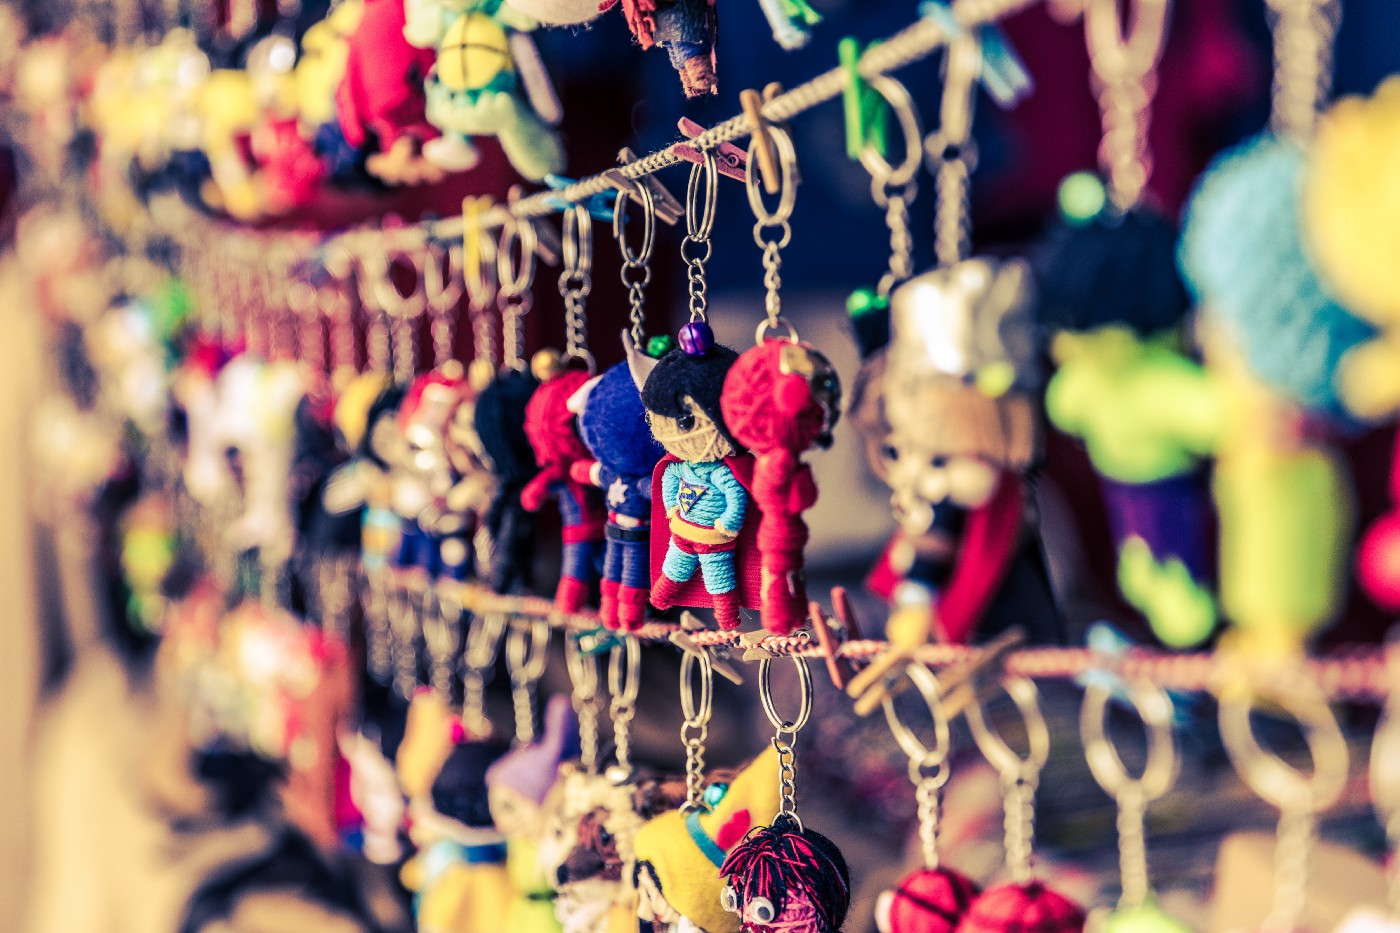 A picture of keychains hanging on rows of rope.